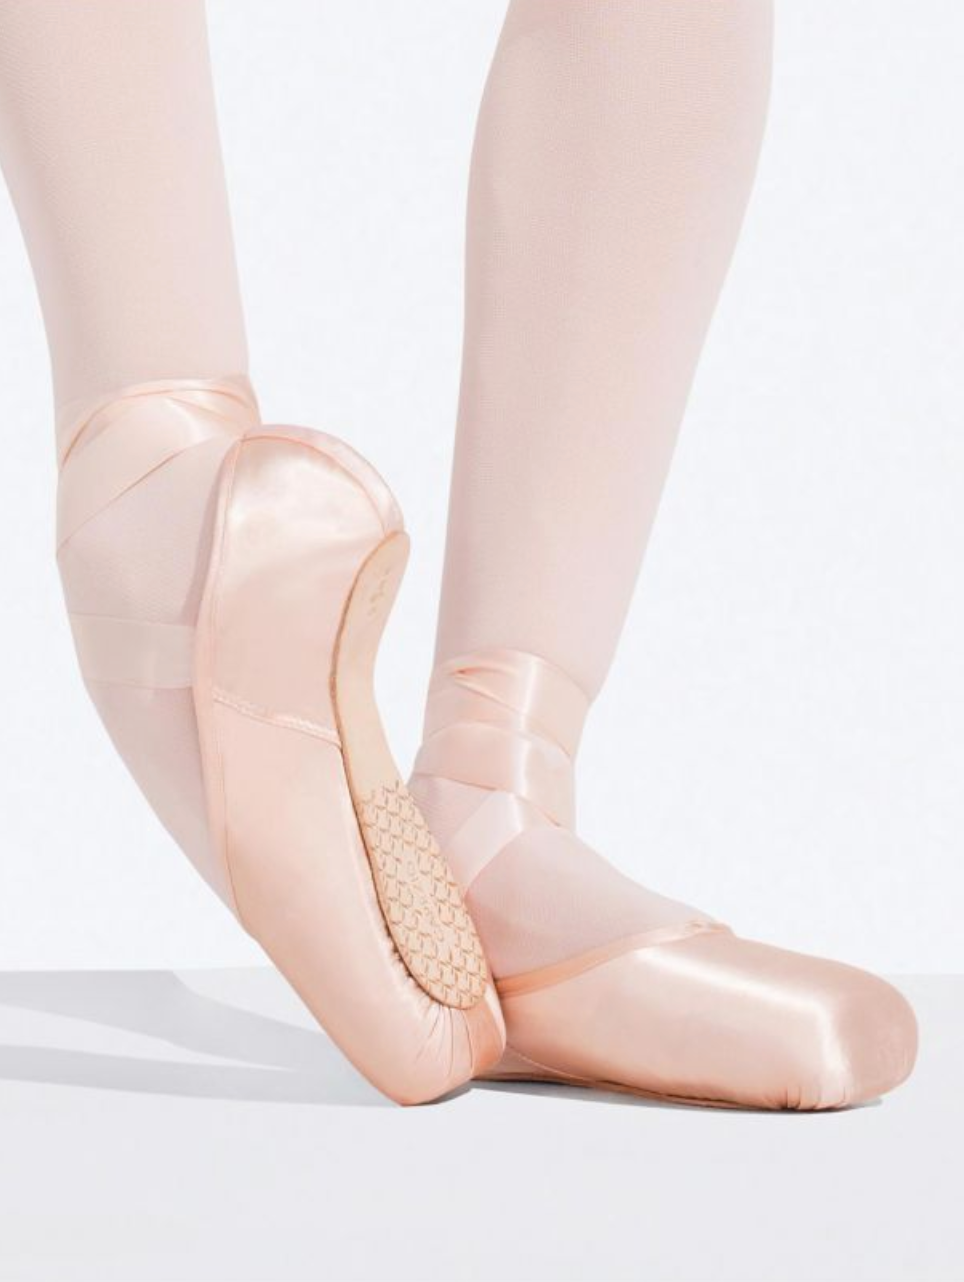 1142W Ava Pointe Shoe with #2.5 Shank and Broad Toe Box